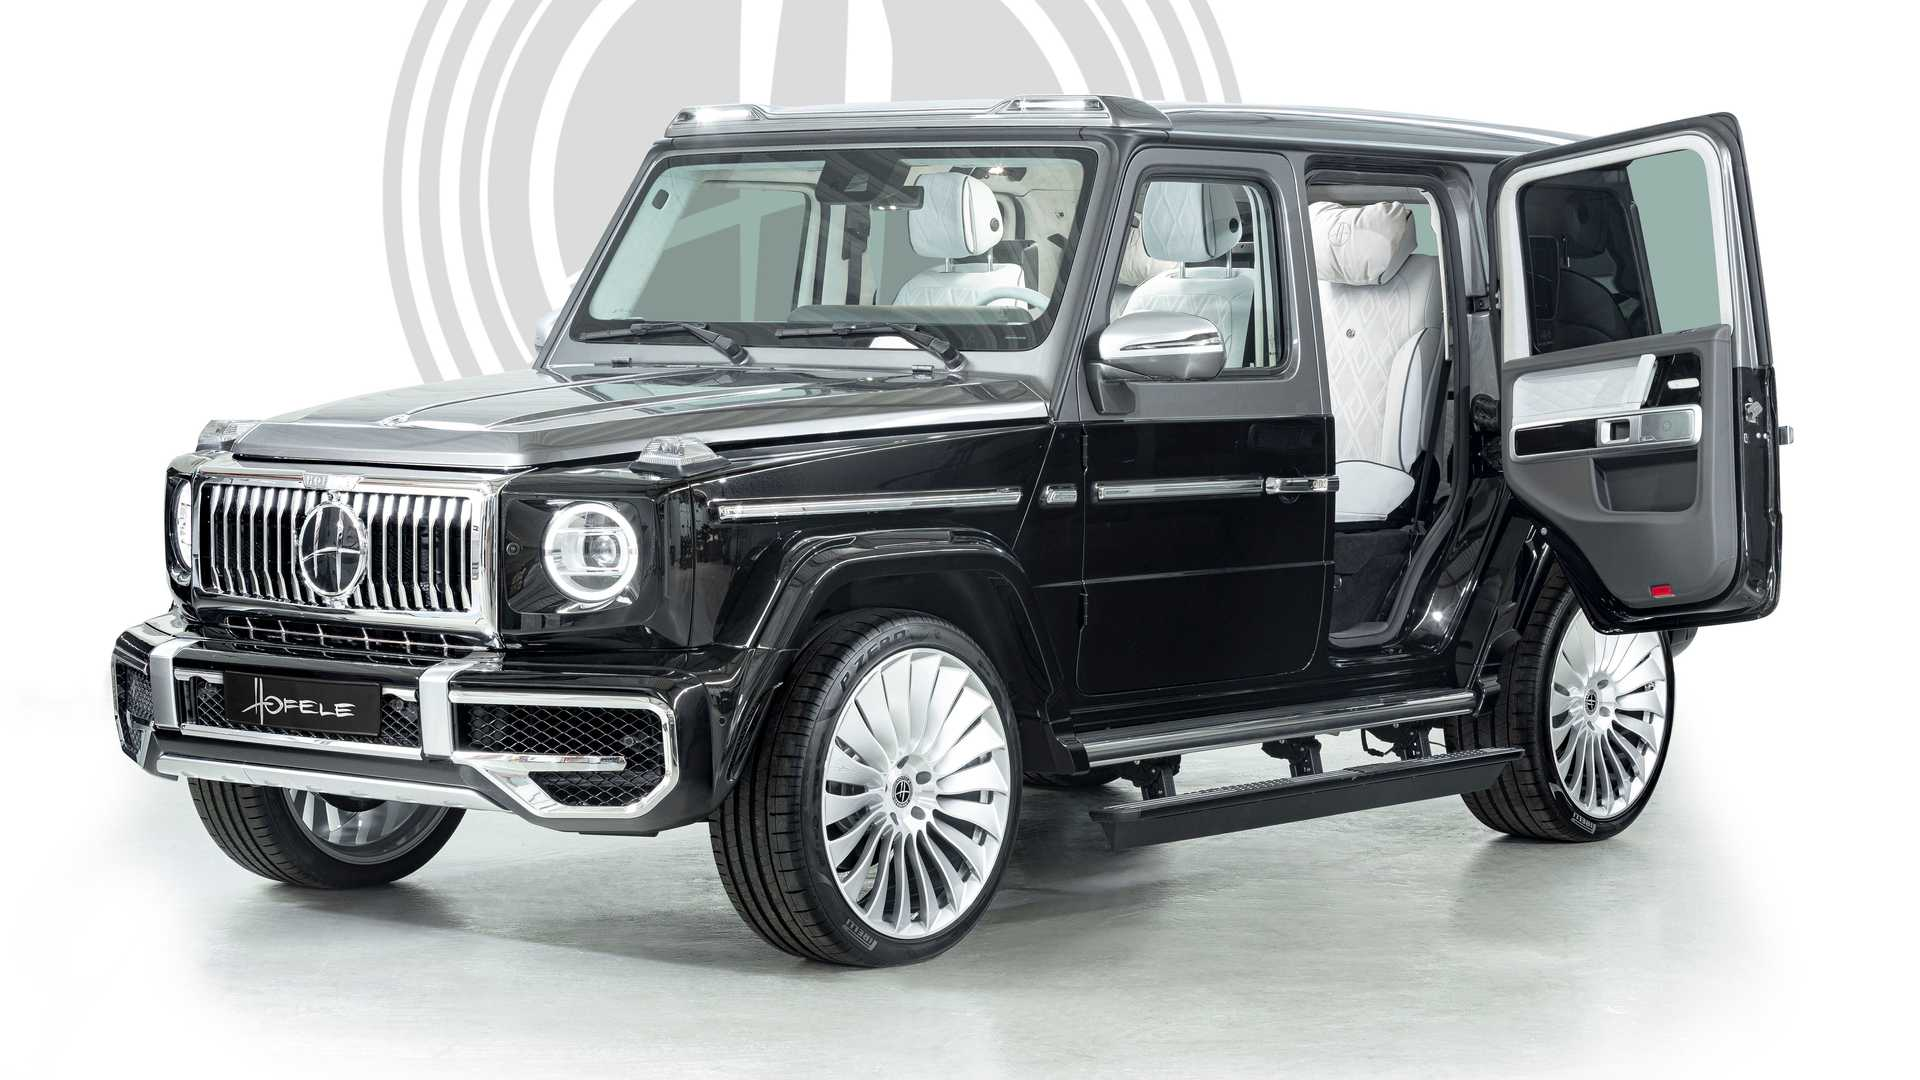 Mercedes G-Class Gets Suicide Doors From Hofele For Added Opulence